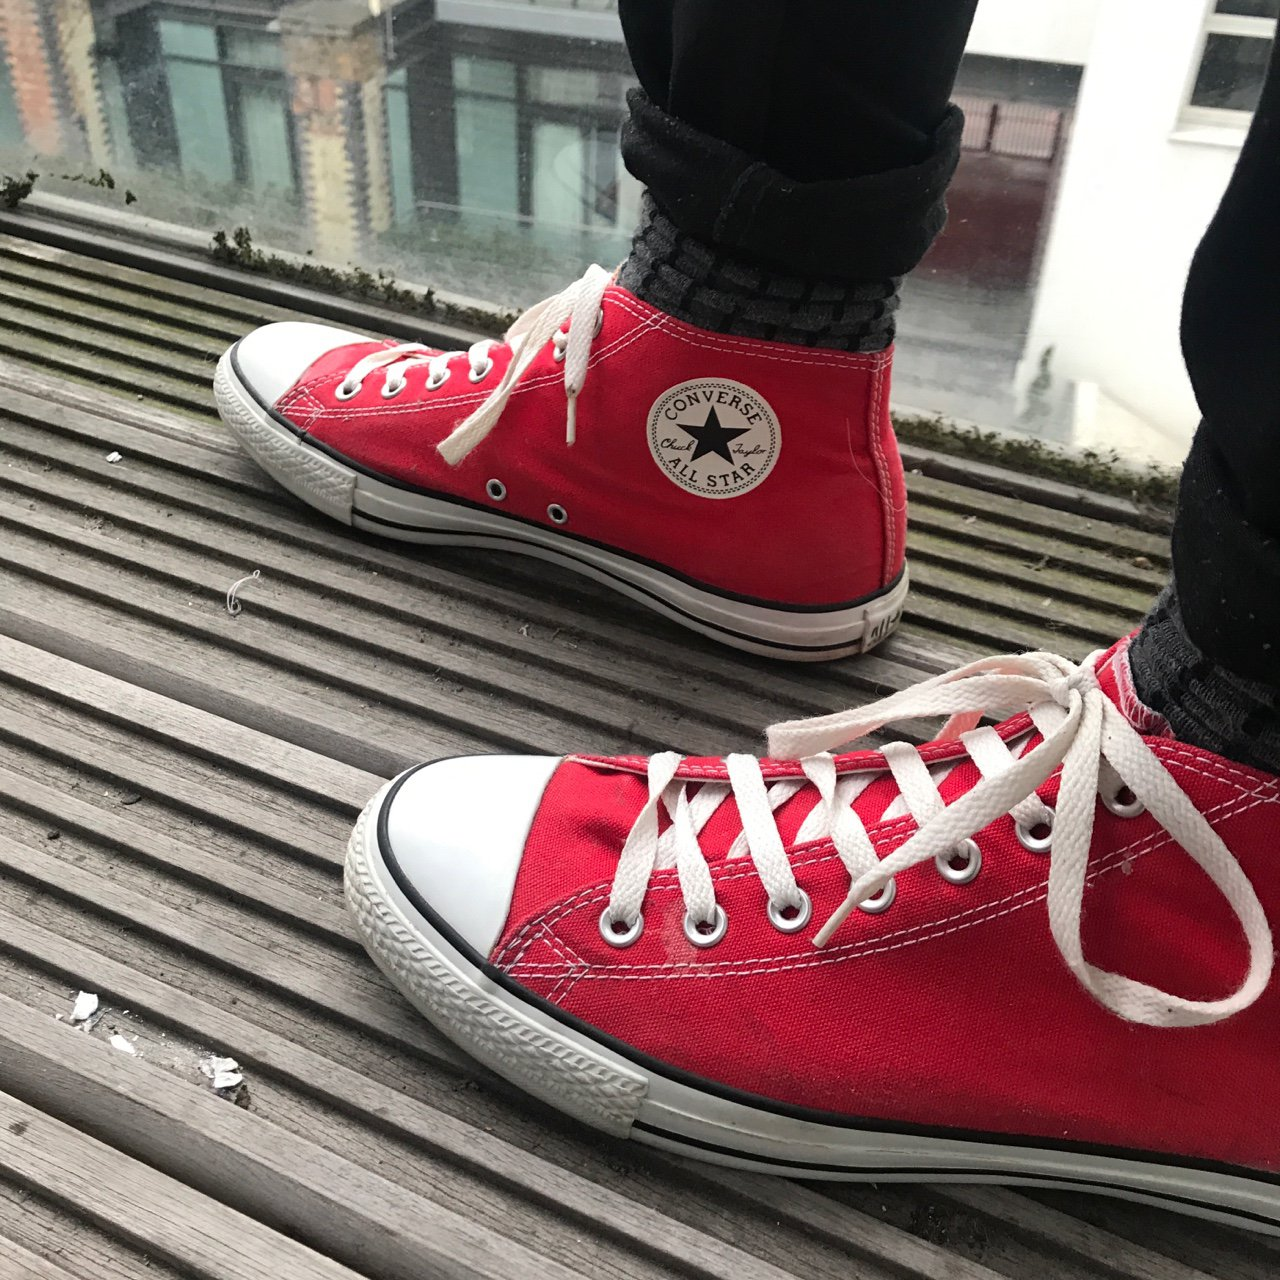 3f9bb7c8749f Authentic Converse Red All Star Chuck Taylor high tops. Some - Depop